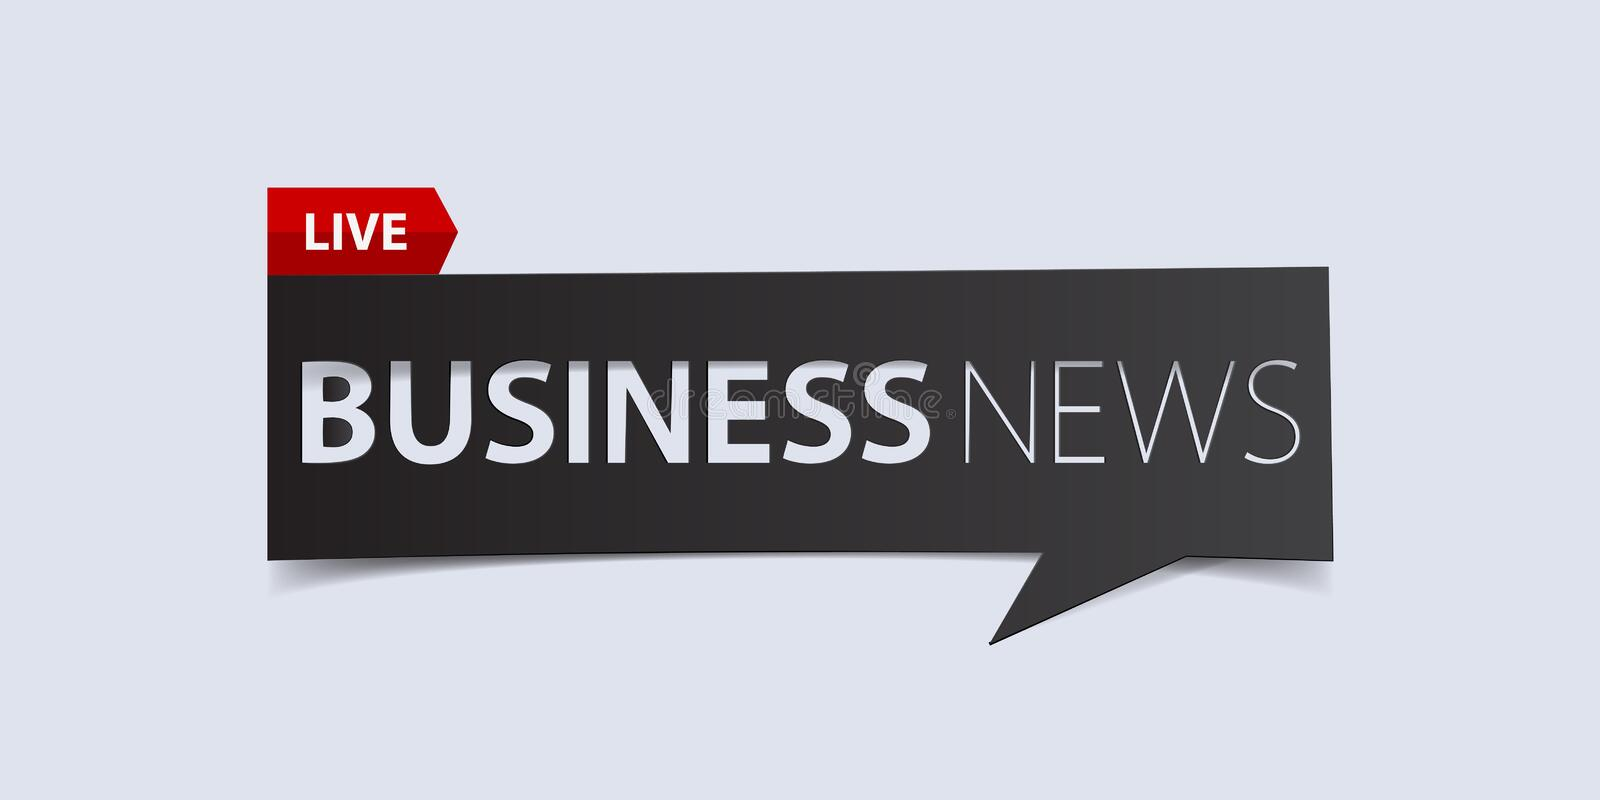 Business news header on white background breaking news banner business news header on white background breaking news banner design template vector illustration accmission Gallery